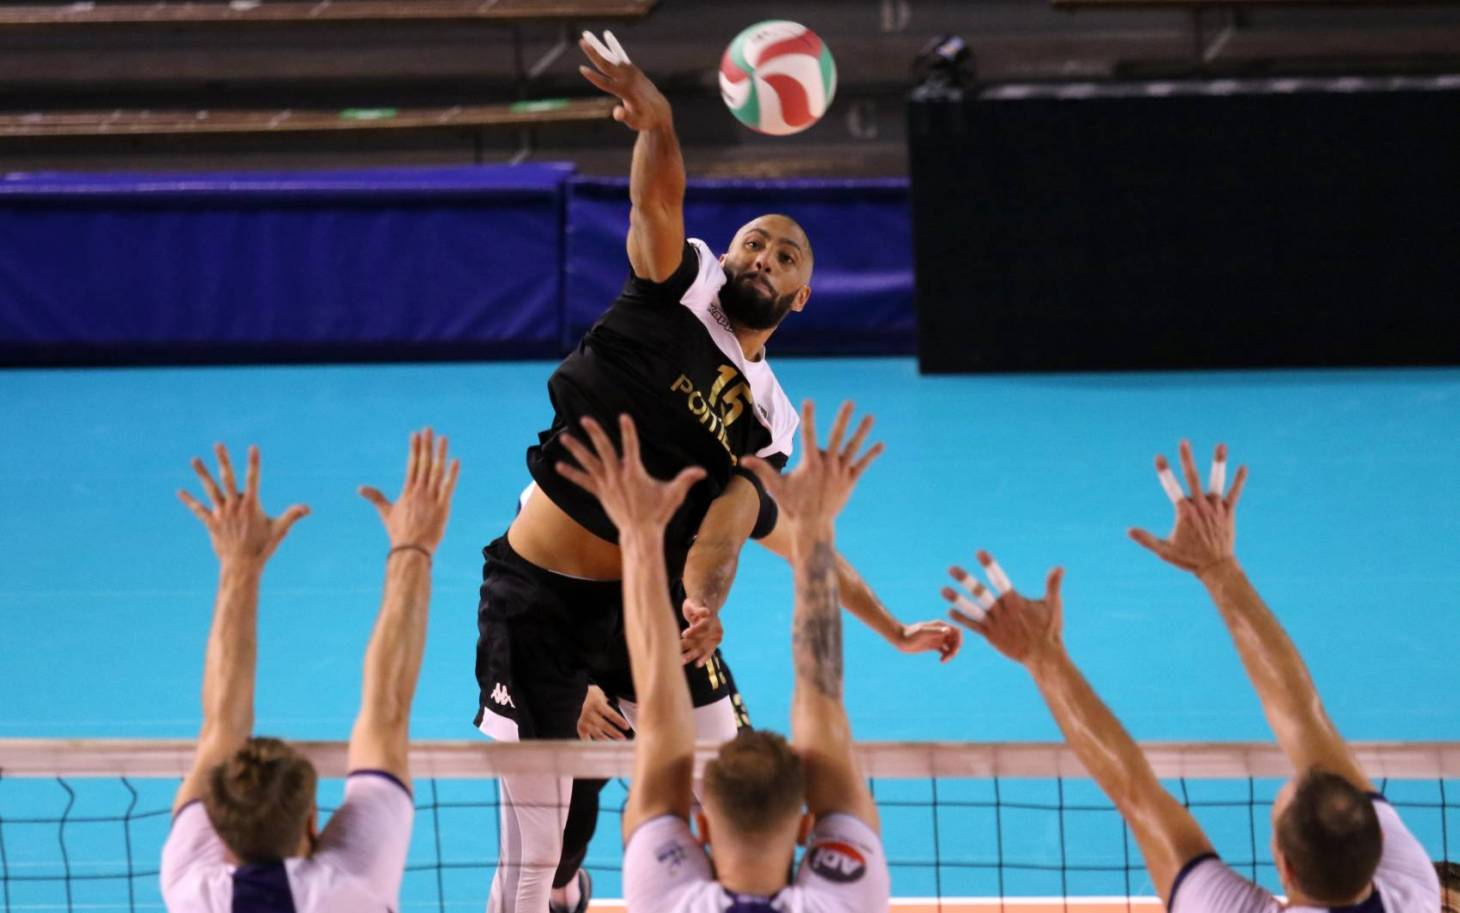 Volley - Poitiers devra se sublimer à Montpellier